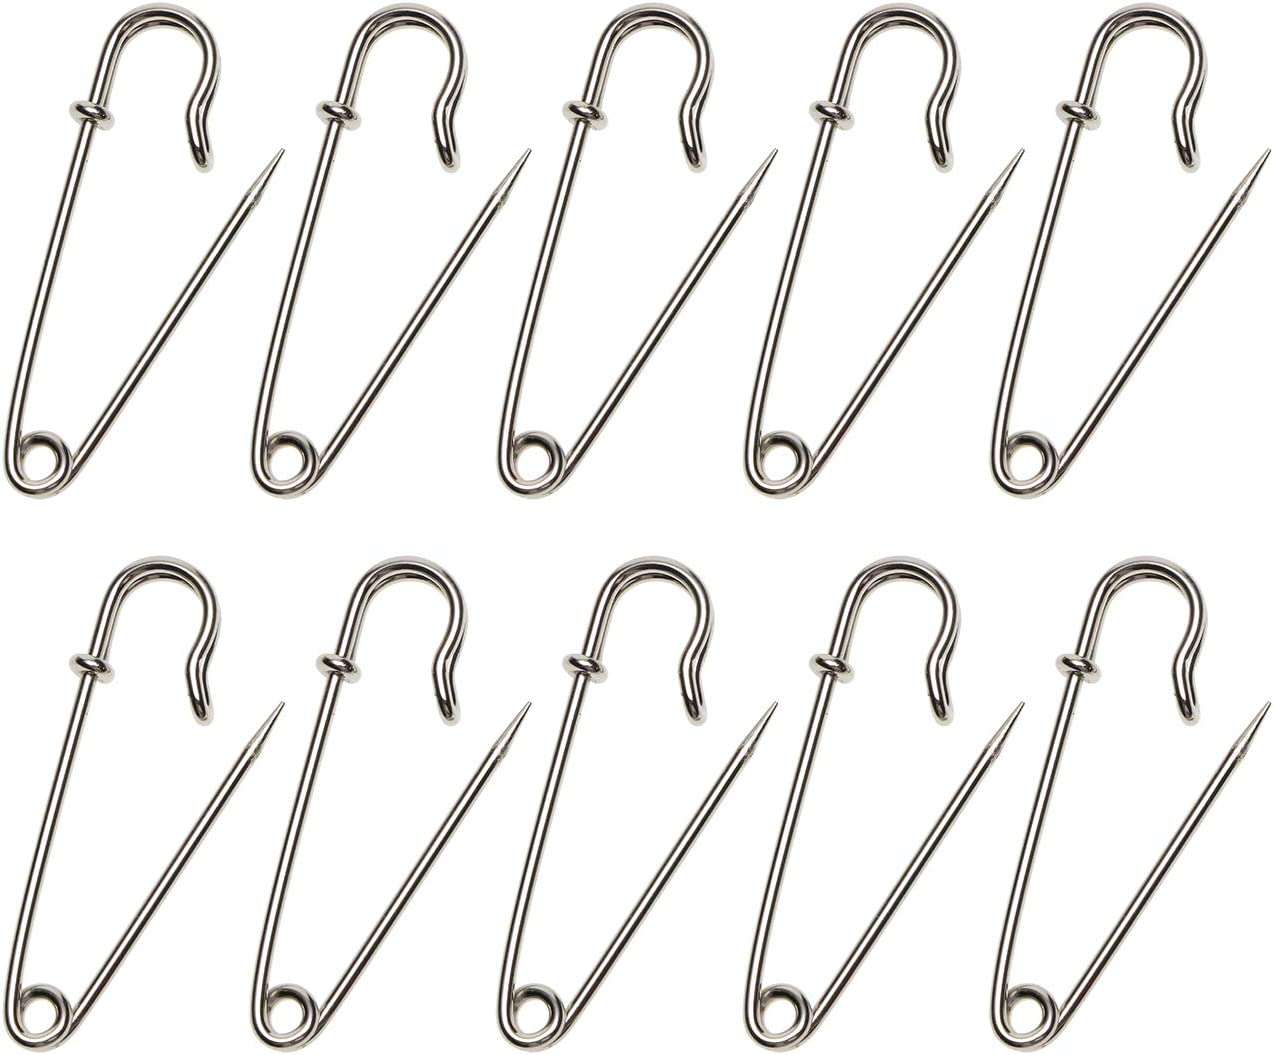 Shapenty 1.78Inch/45mm Steel Wire Spring Lock Safety Pins Fasteners for Skirt Blankets Clothing Fabric Craft Quilting Knitting, Upholstery and Tablecloth Bed Sheets Secure, 10PCS (Silver, 45mm)